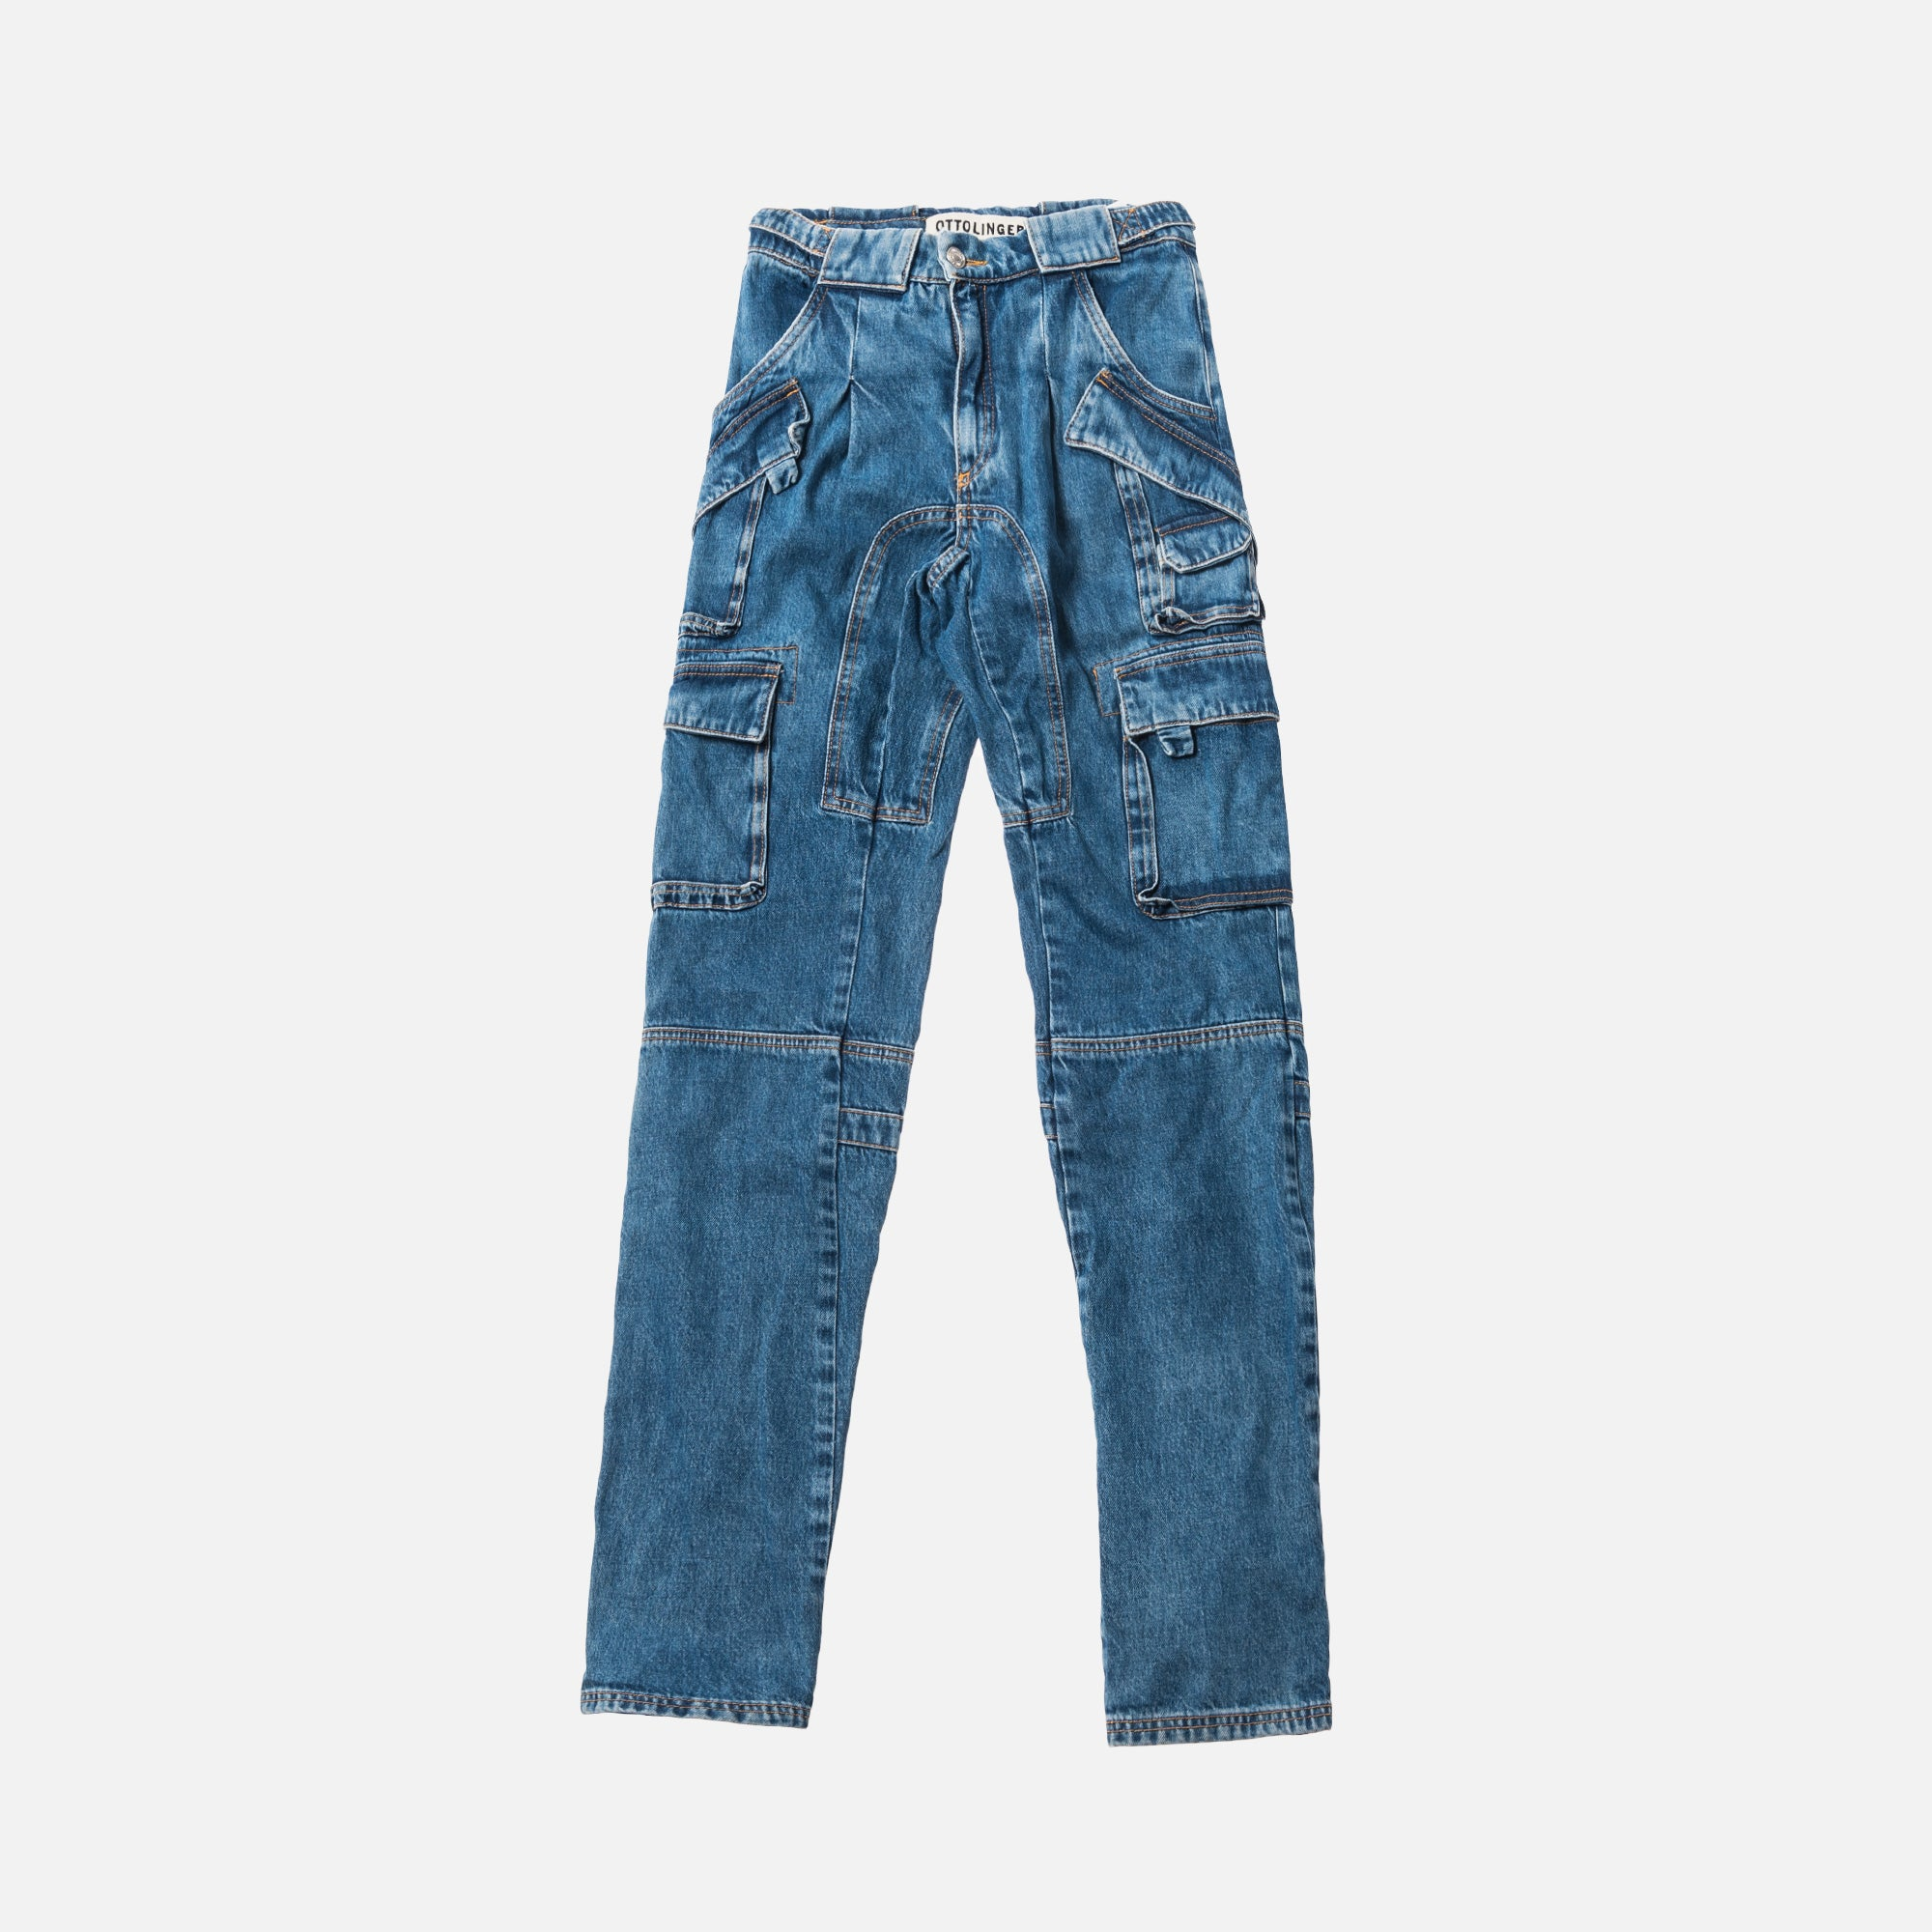 Ottolinger Cargo Pants - Denim